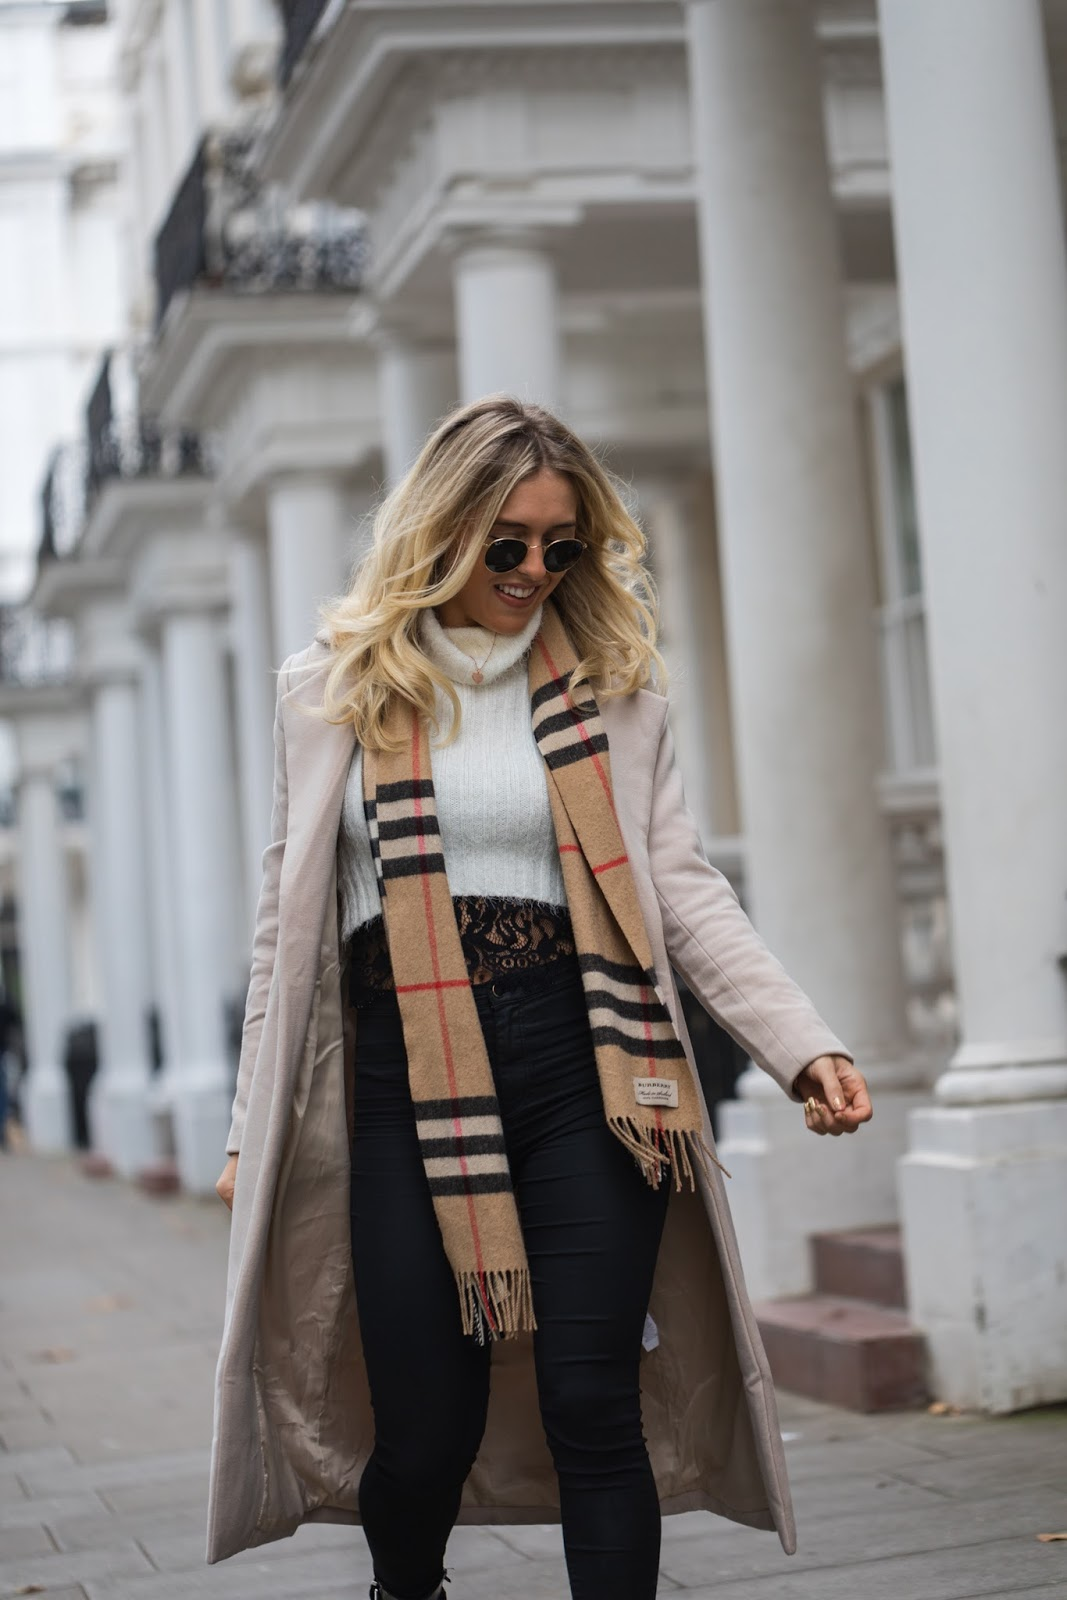 street style shot in london